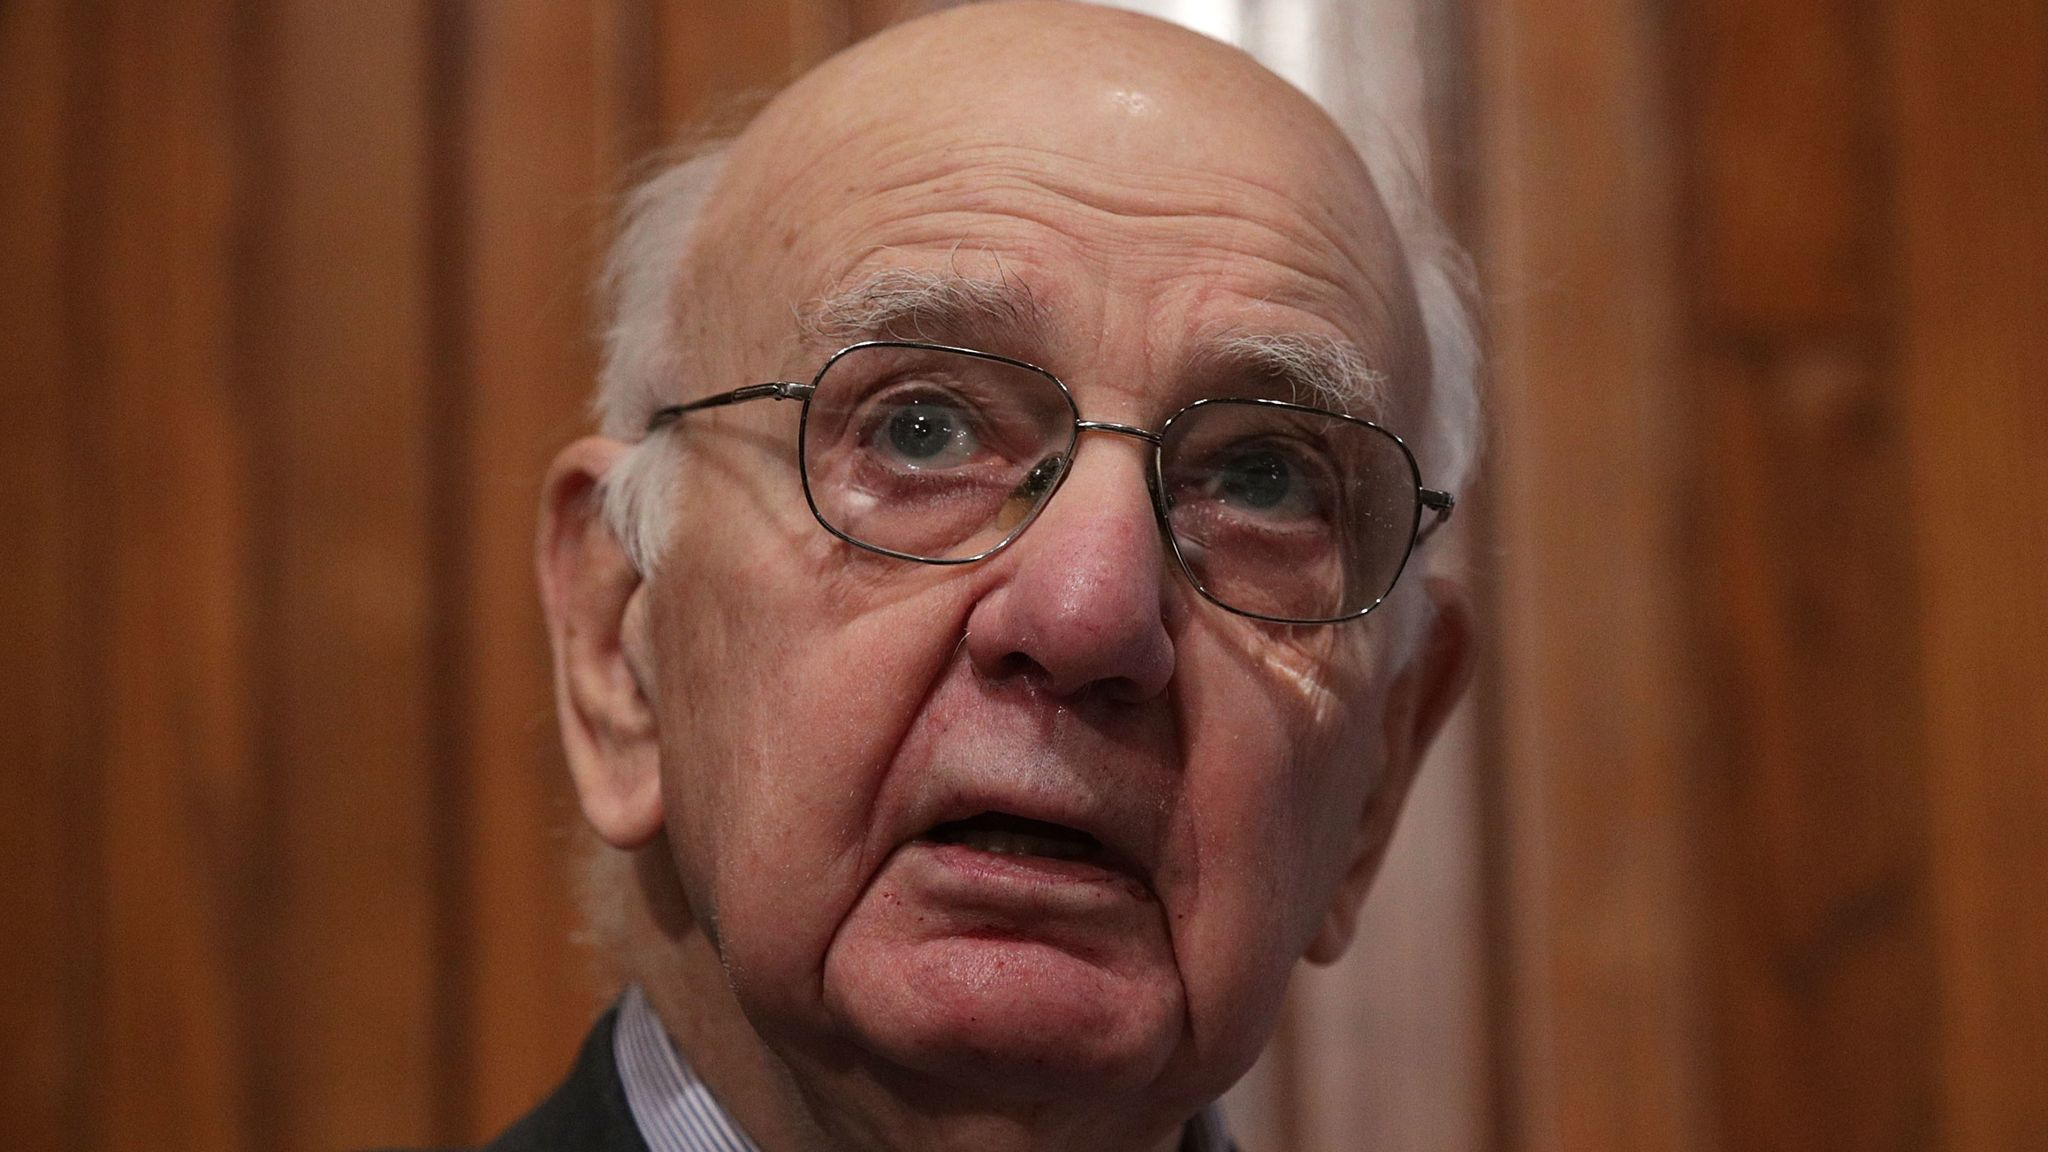 Paul Volcker: The Fed chairman who waged war on inflation dies aged 92